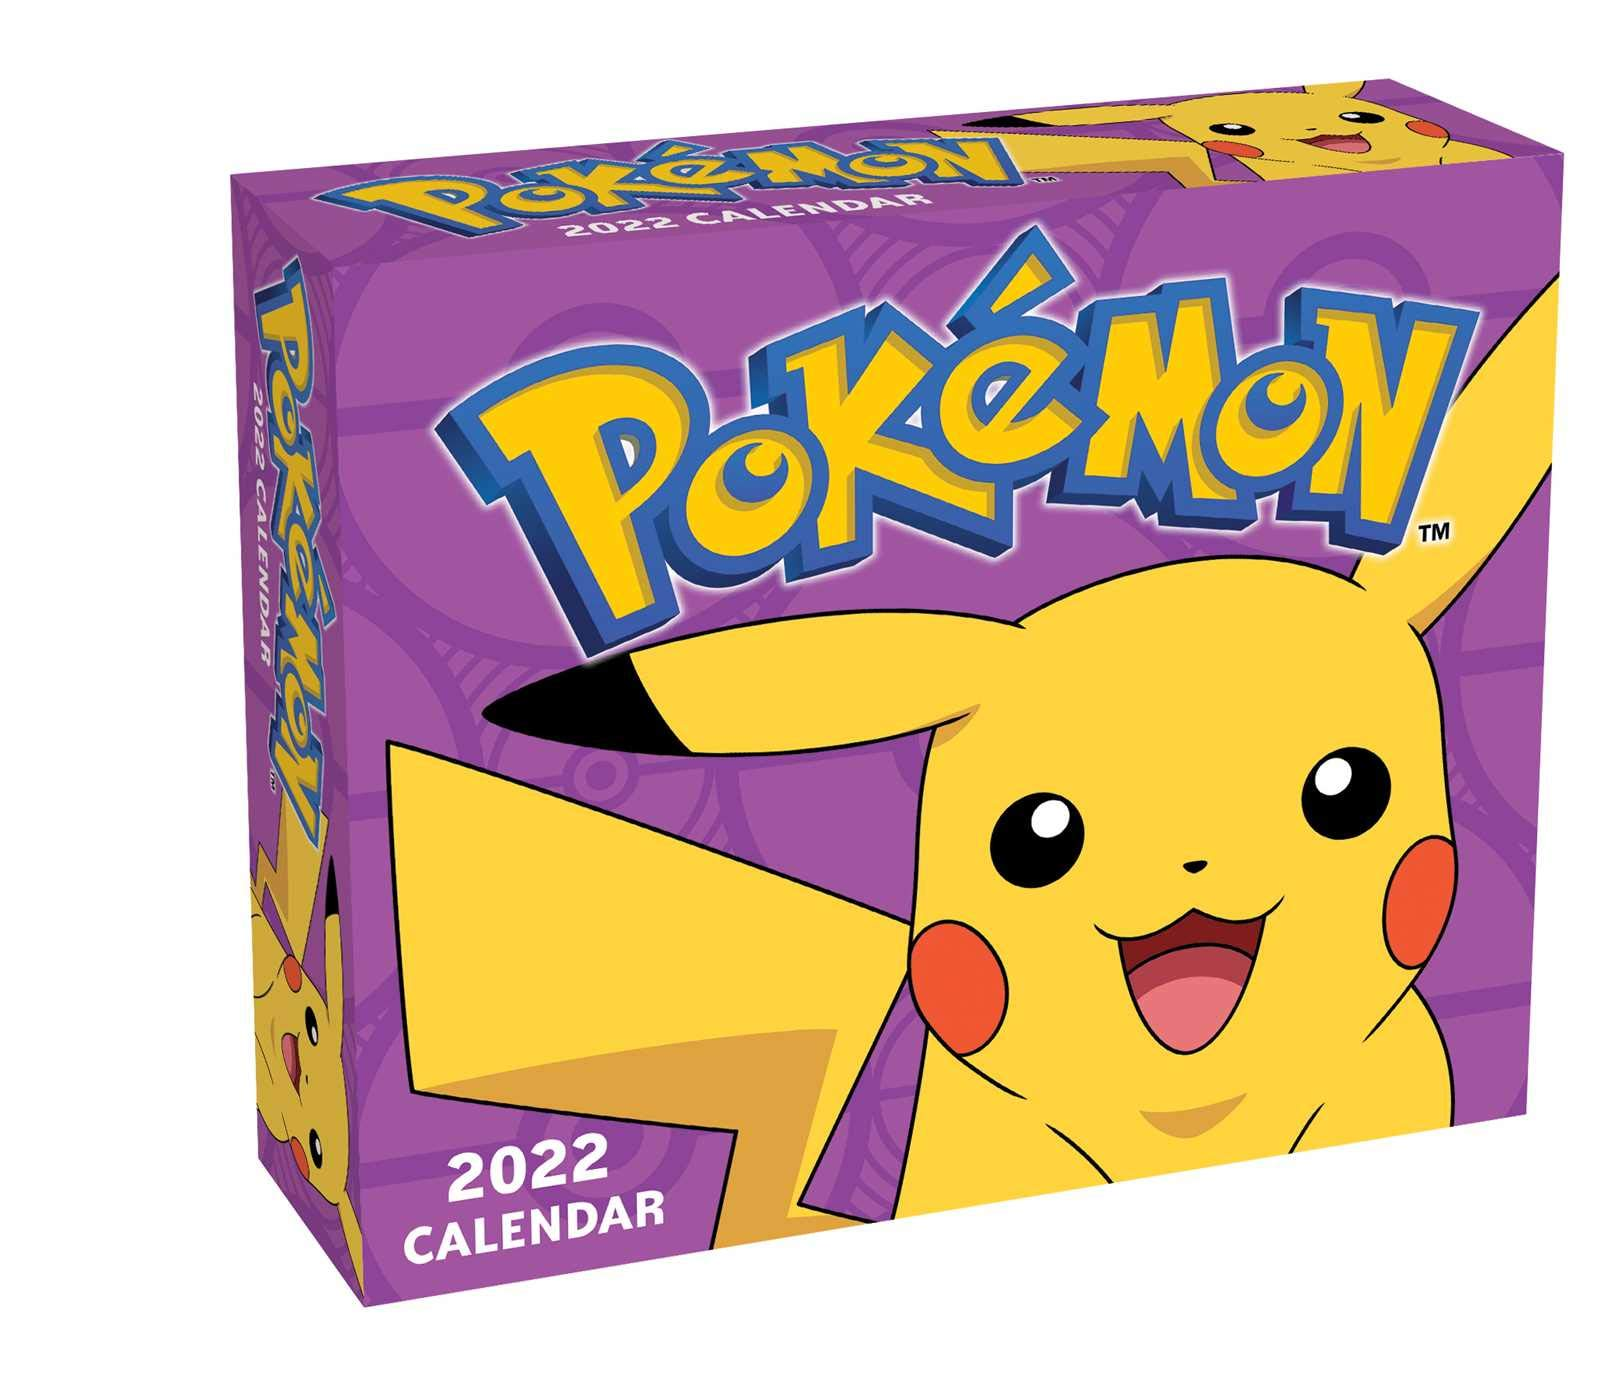 Day Of Year Calendar 2022.Buy Pokemon 2022 Day To Day Calendar Book Online At Low Prices In India Pokemon 2022 Day To Day Calendar Reviews Ratings Amazon In